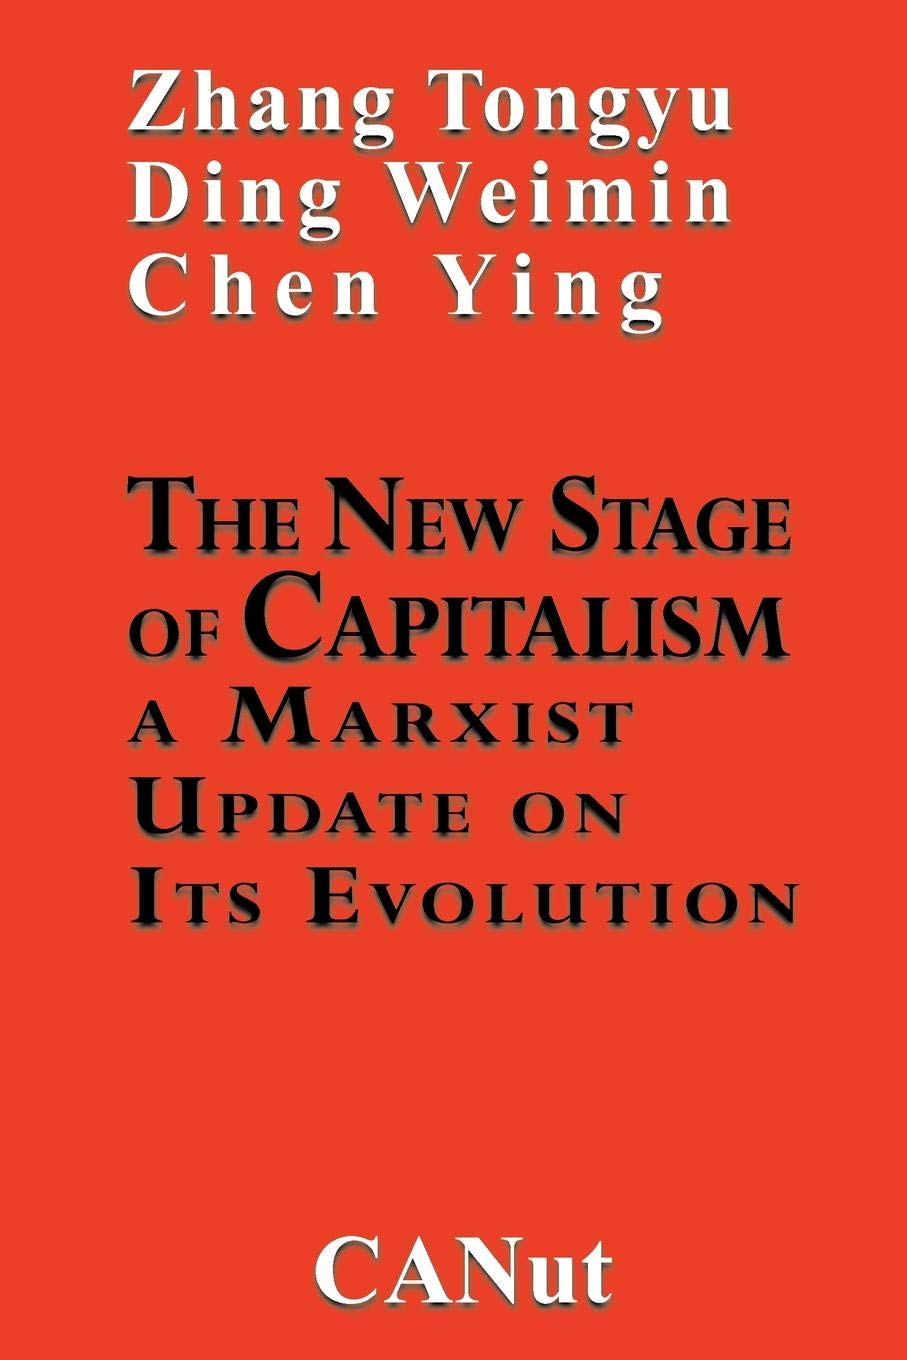 The New Stage of Capitalism: A Marxist Update on Its Revolution: Amazon.es: Tongyu, Zhang, Weinin, Ding: Libros en idiomas extranjeros